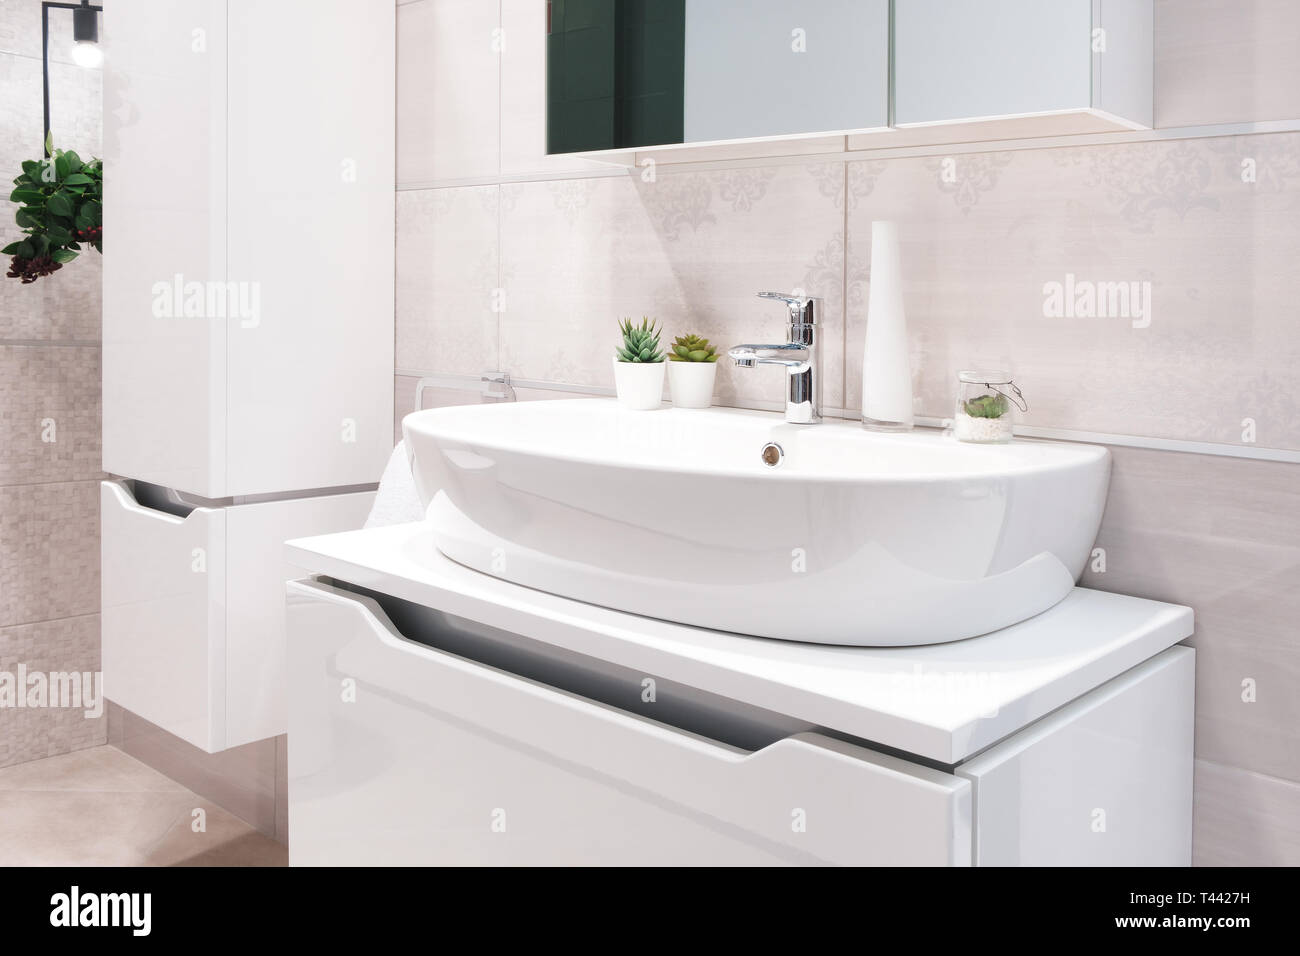 Luxury Faucet Mixer On A Round Bowl White Sink In A Beautiful Beige Gray Bathroom Stock Photo Alamy